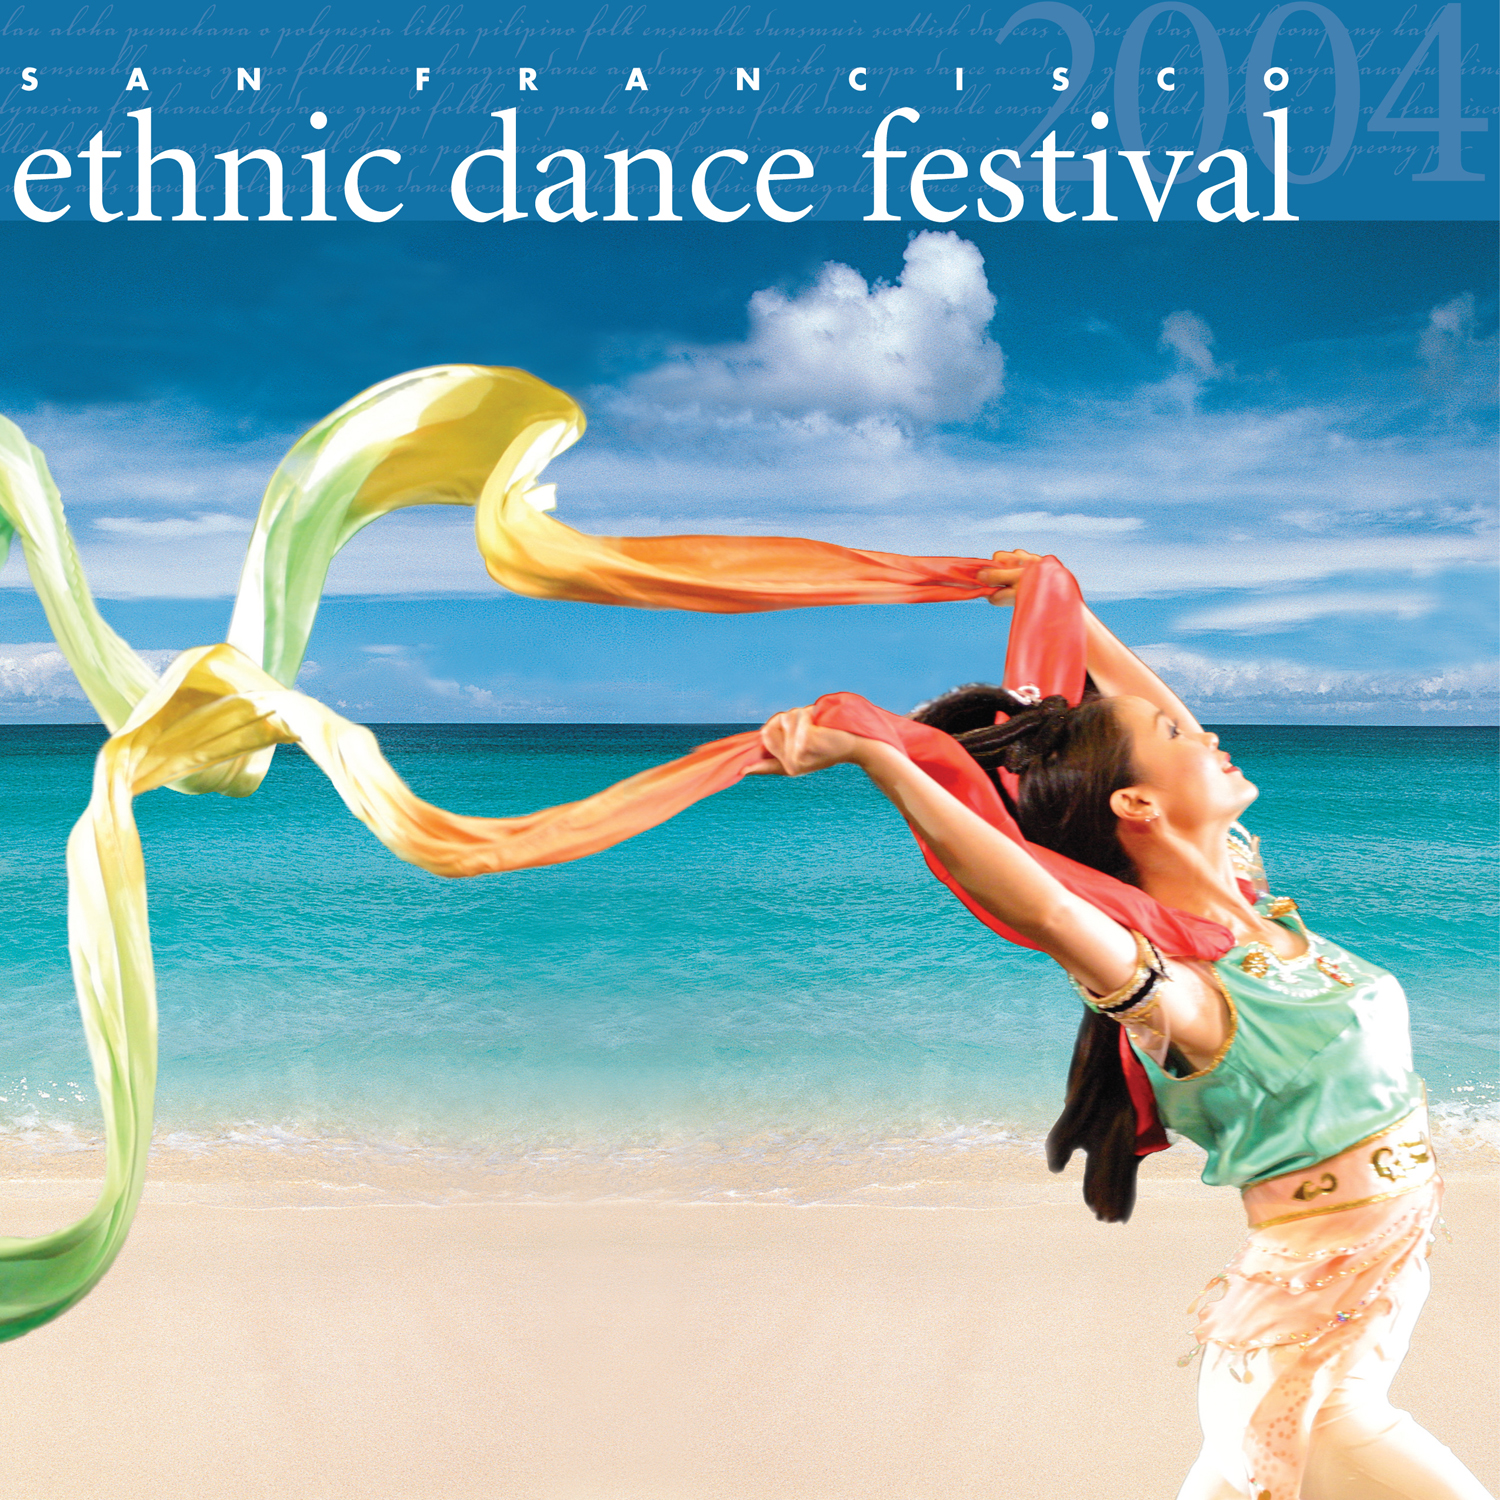 SF Ethnic Dance Festival Program Book